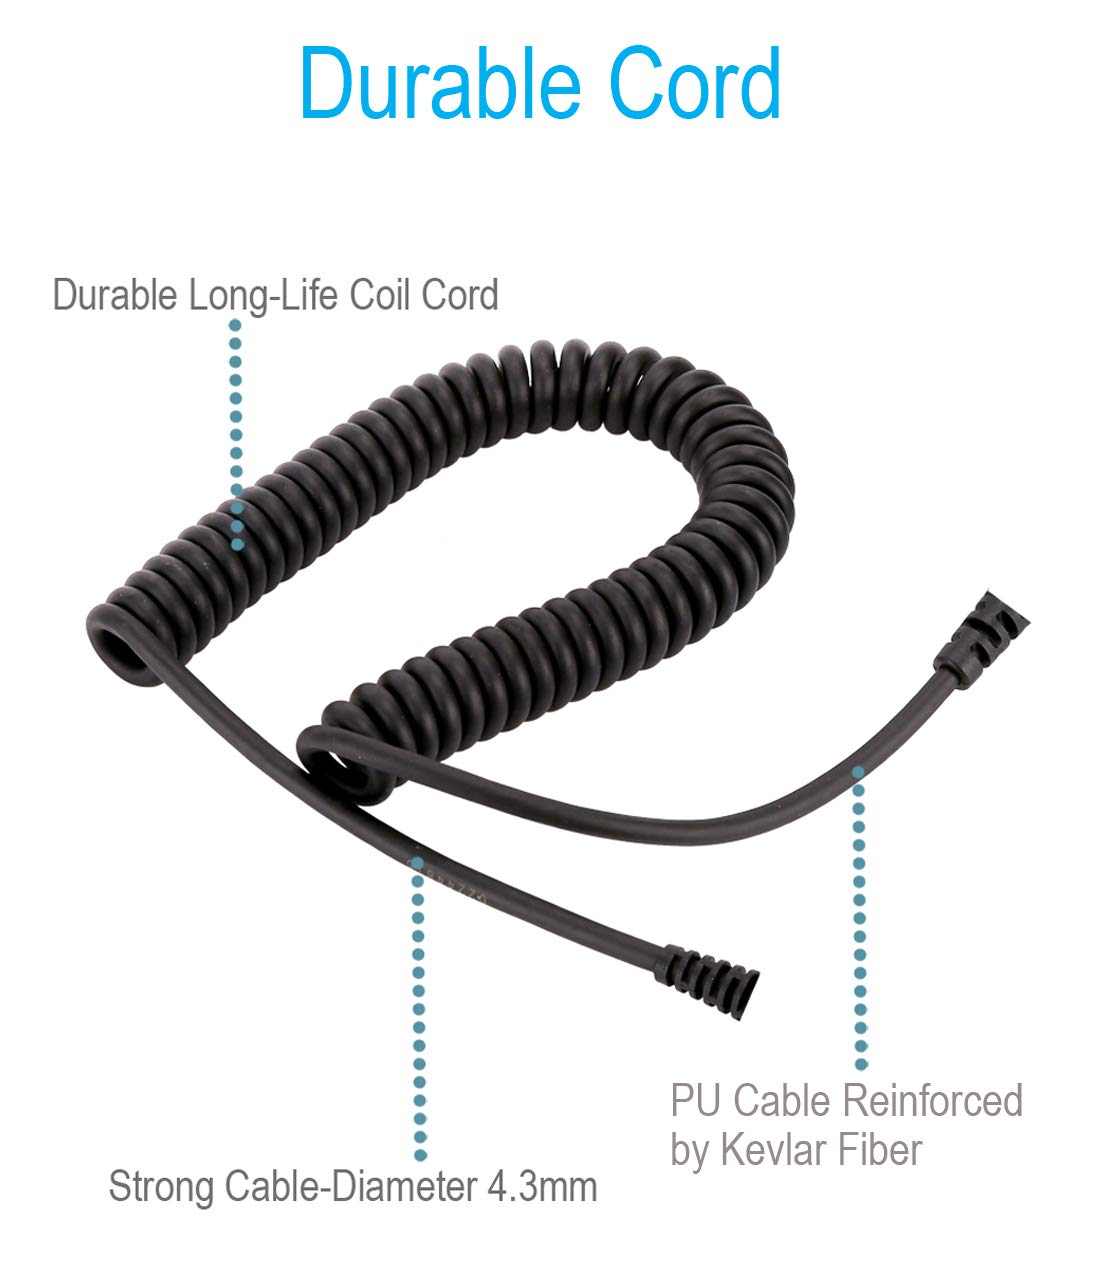 Compact Speaker Mic with Reinforced Cable for Kenwood Radios NX-220 NX-320 TK-2160 TK-2170 TK-2212 TK-2302 TK-2312 TK-2360 TK-2402 TK-3160 TK-3170 TK-3230 TK-3312 TK-3360 TK-3402 Shoulder Microphone